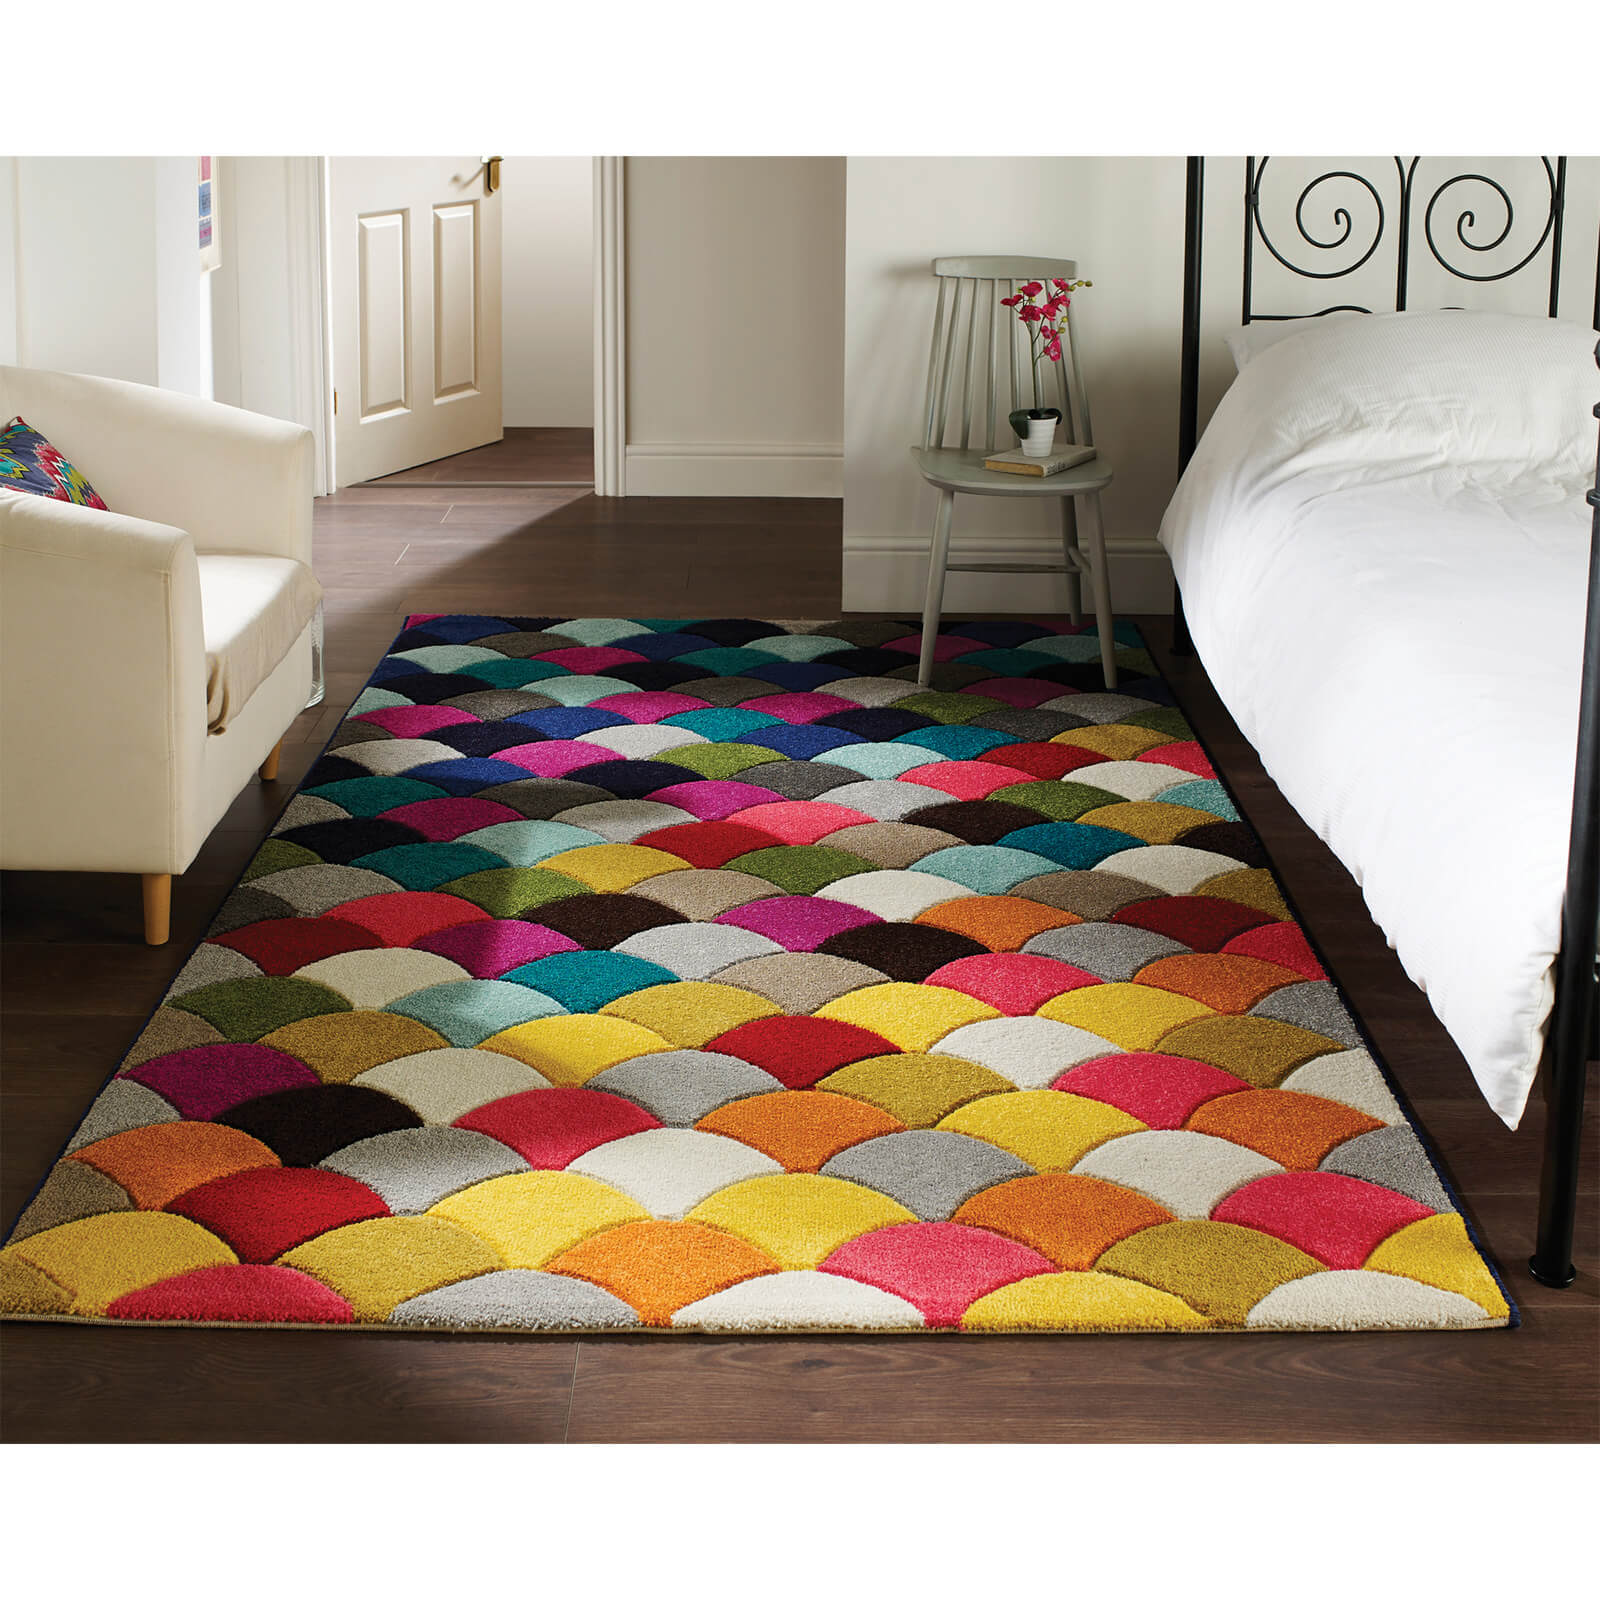 Flair Spectrum Jive Rug - Multi